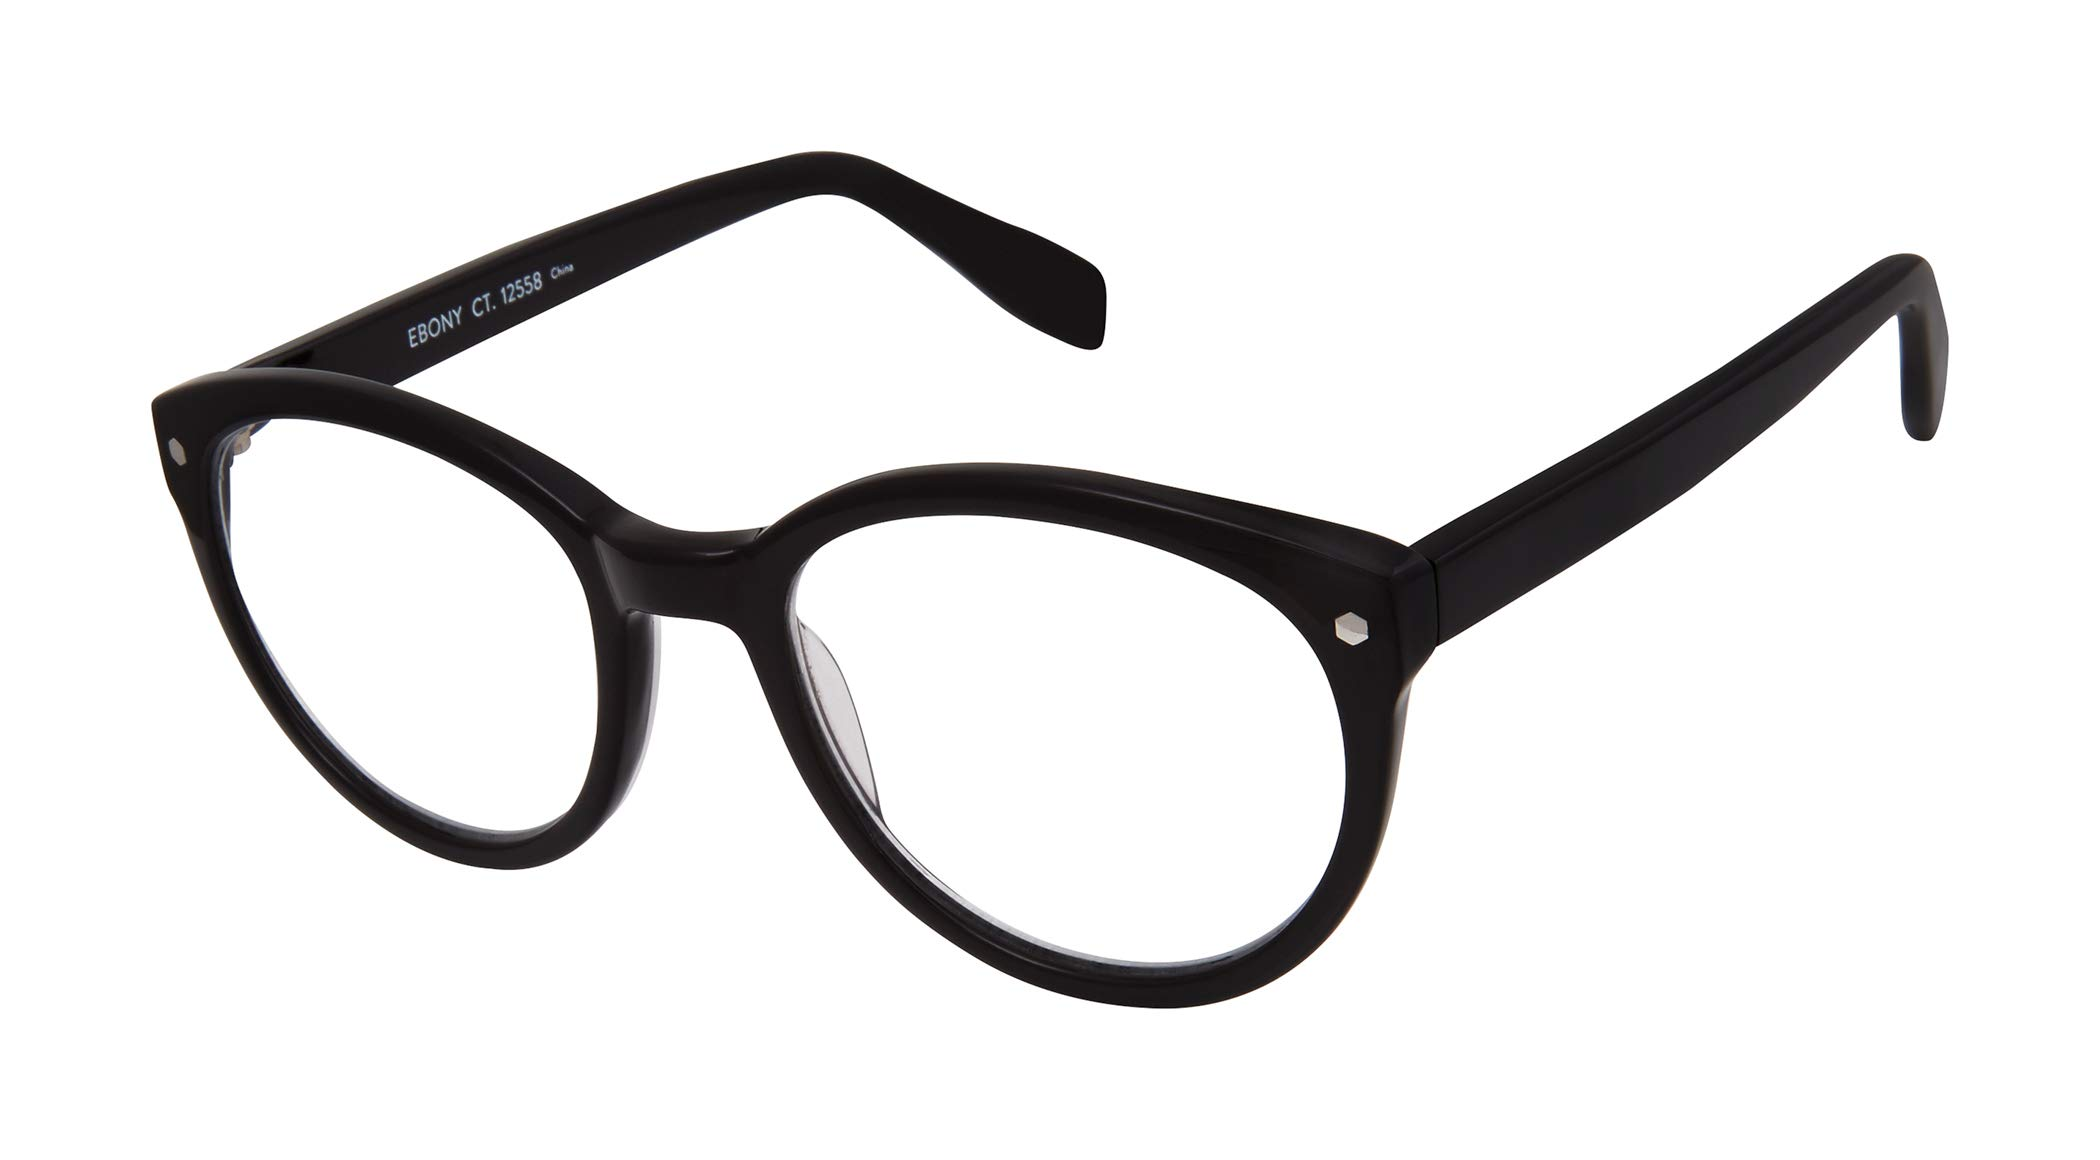 Ebony Court - 100% Recycled - Round Eco-Friendly Fashion Reading Glasses for Men and Women - Onyx Black